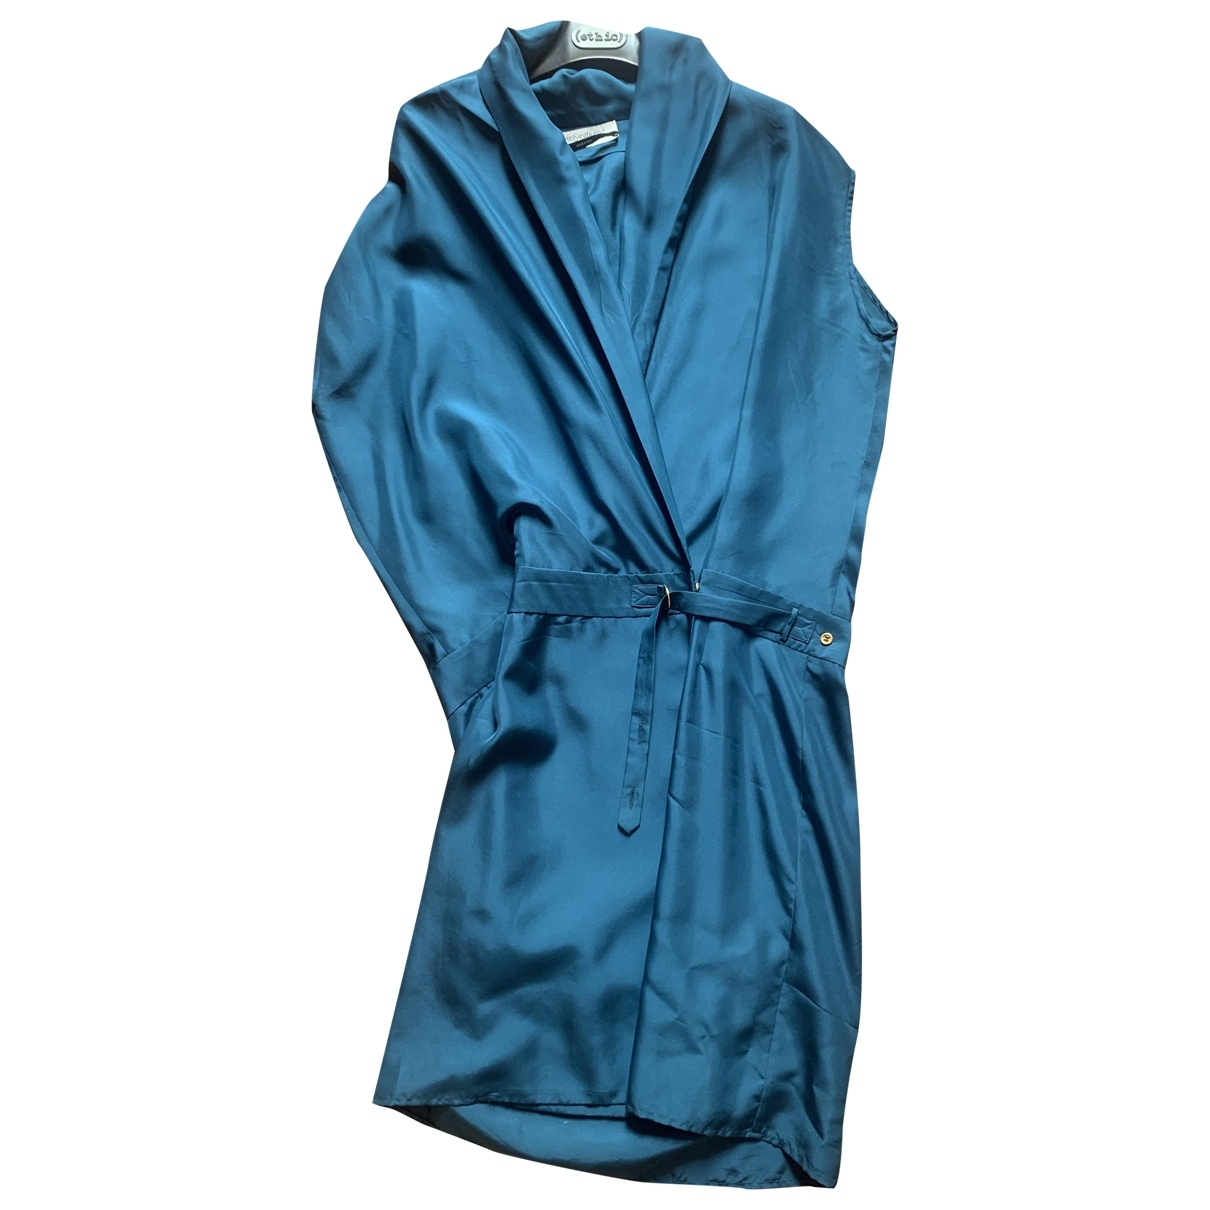 Yves Saint Laurent \N Kleid in  Blau Seide